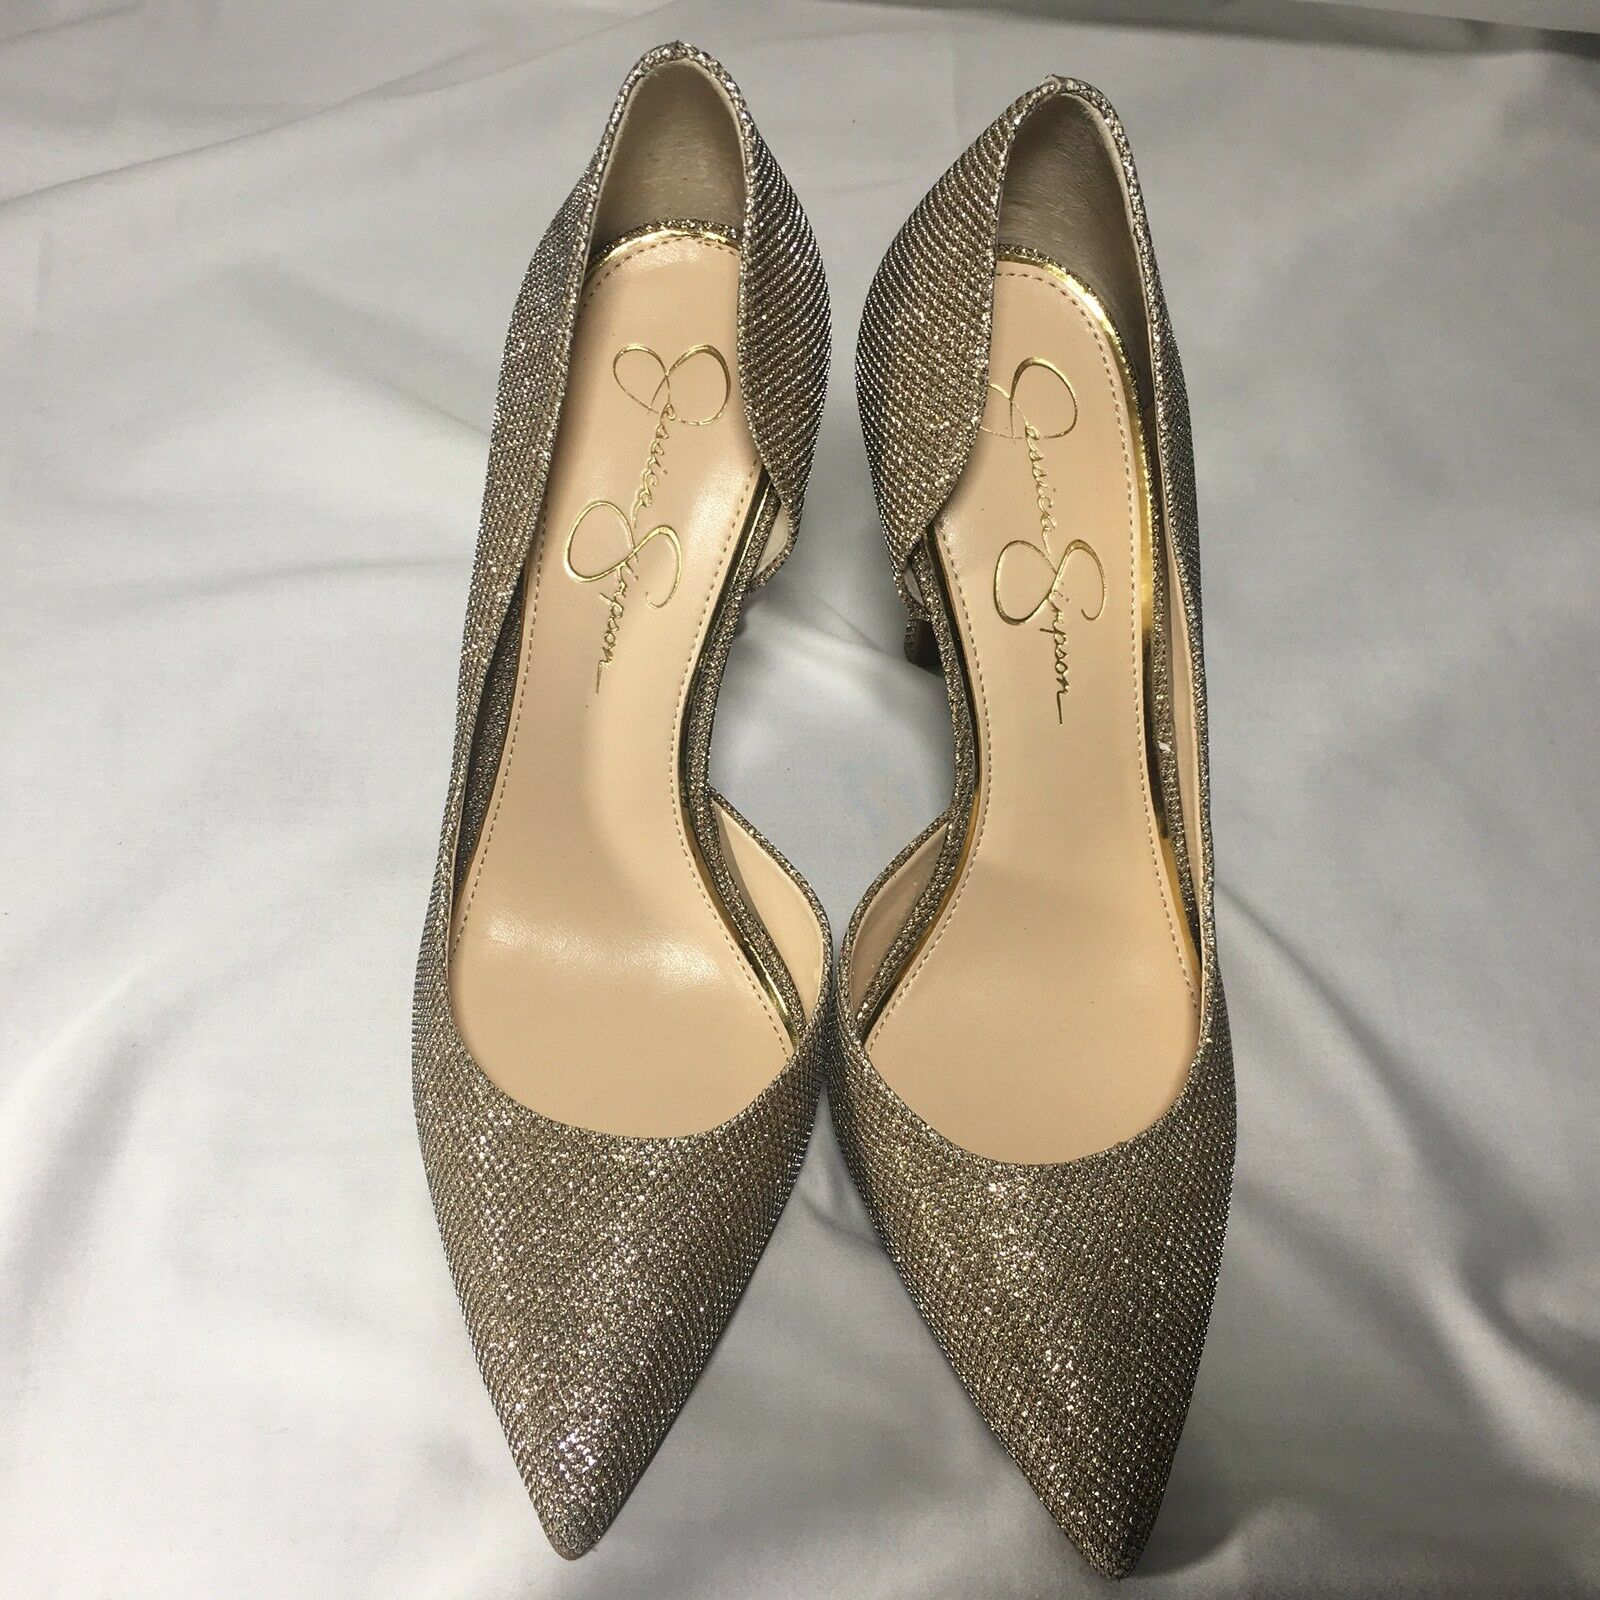 Jessica Simpson Claudette 10 M Soft Gold Shimmer Pointed toe Stiletto Pump New